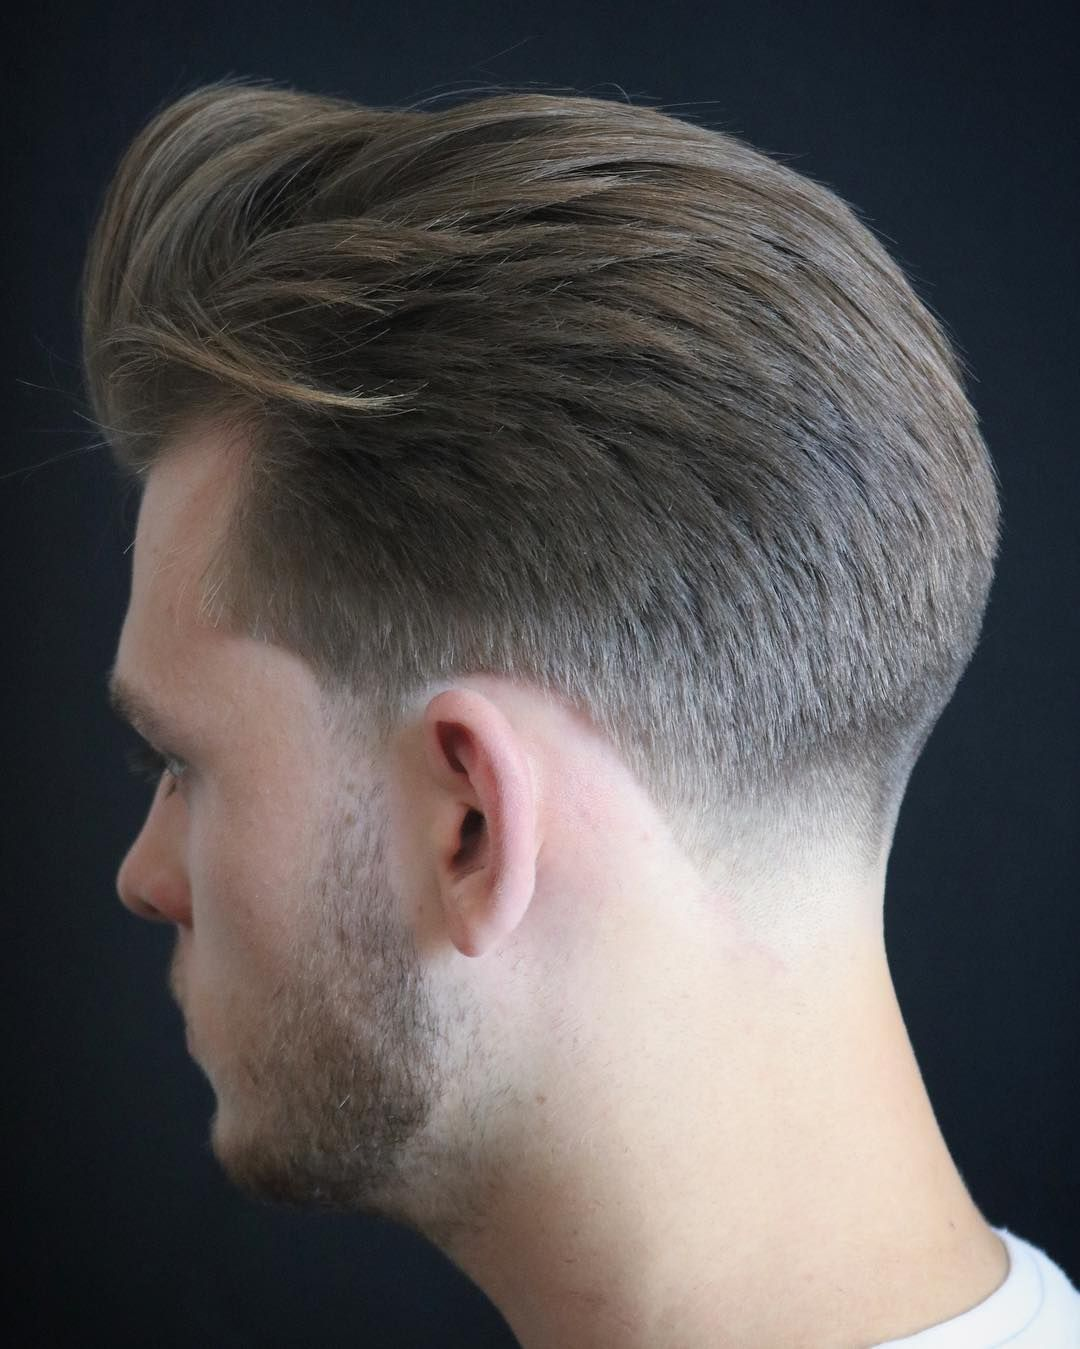 28+ How to cut a taper haircut information